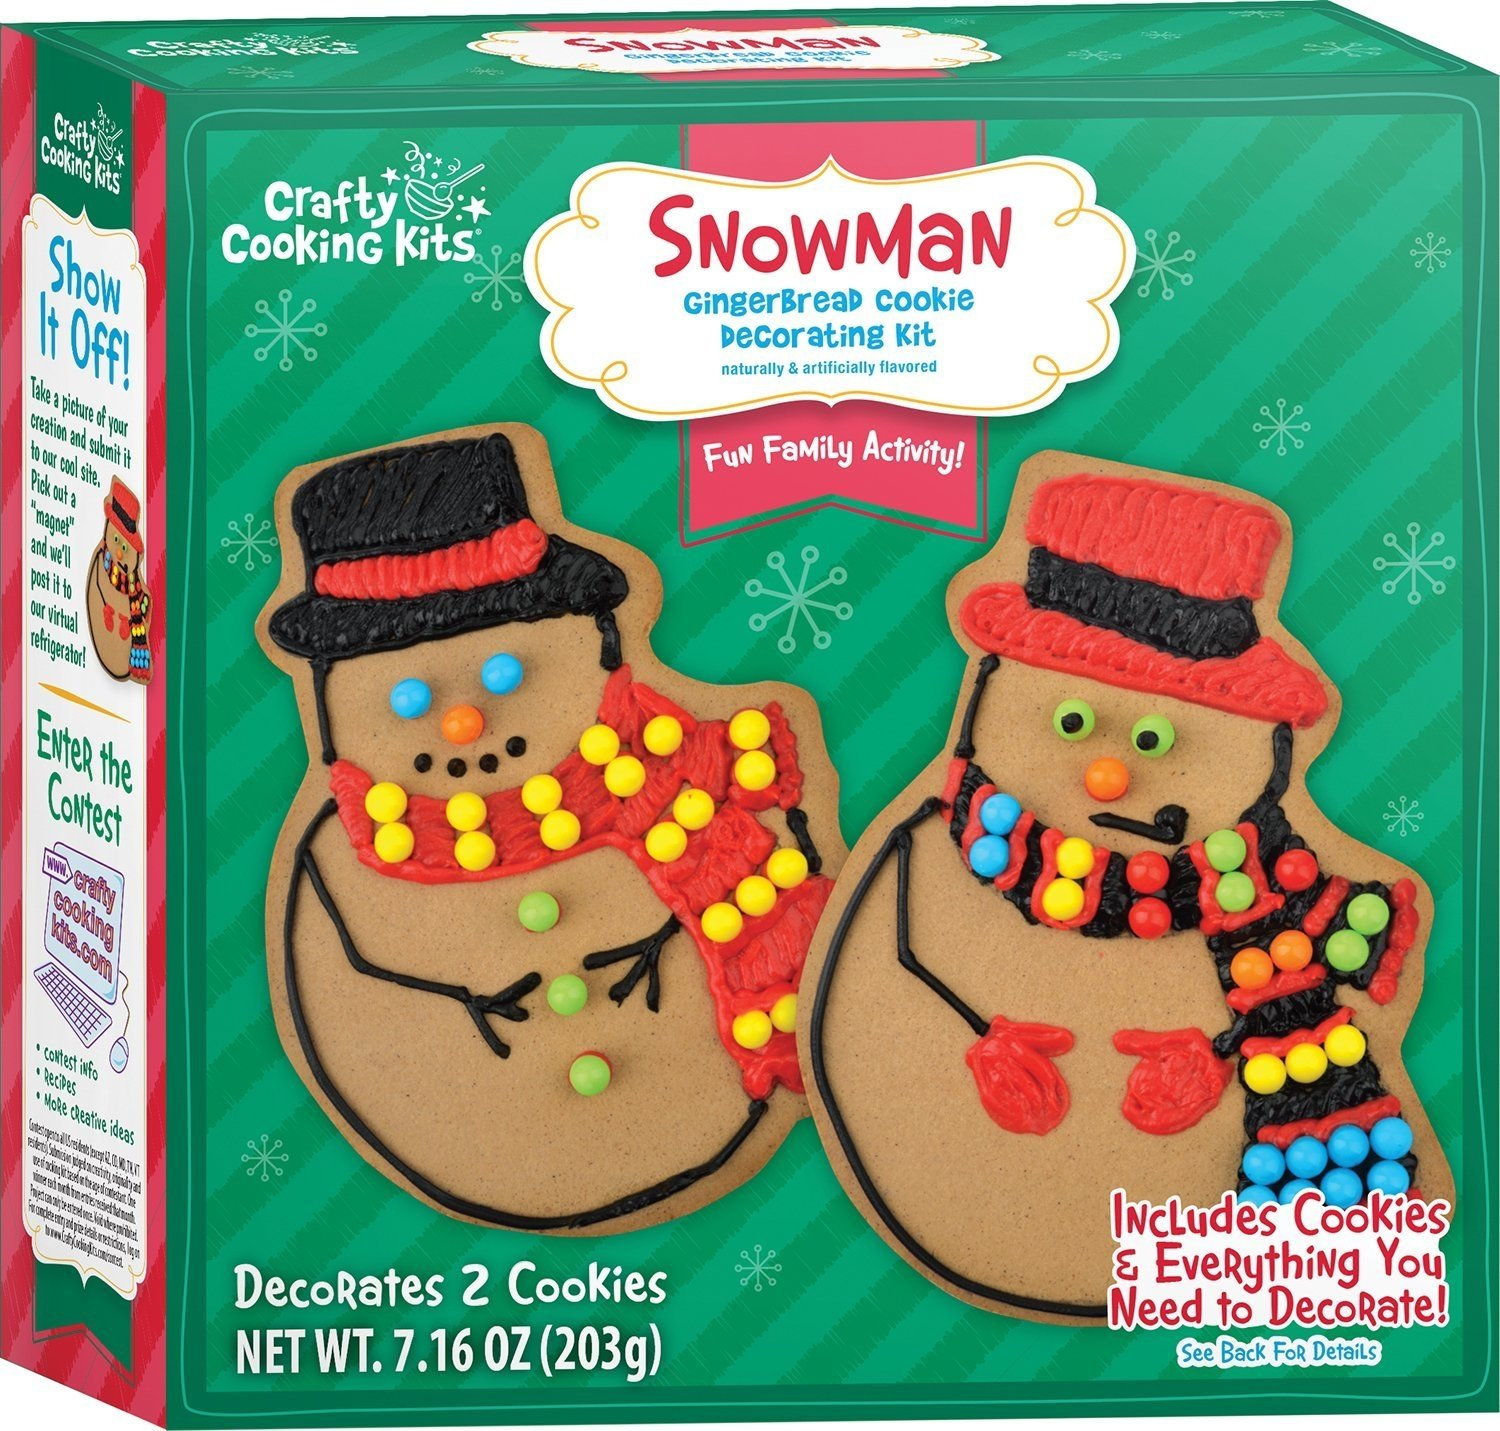 Crafty Cooking Kits Snowman Gingerbread Cookie Decorating, 7.16 Ounce